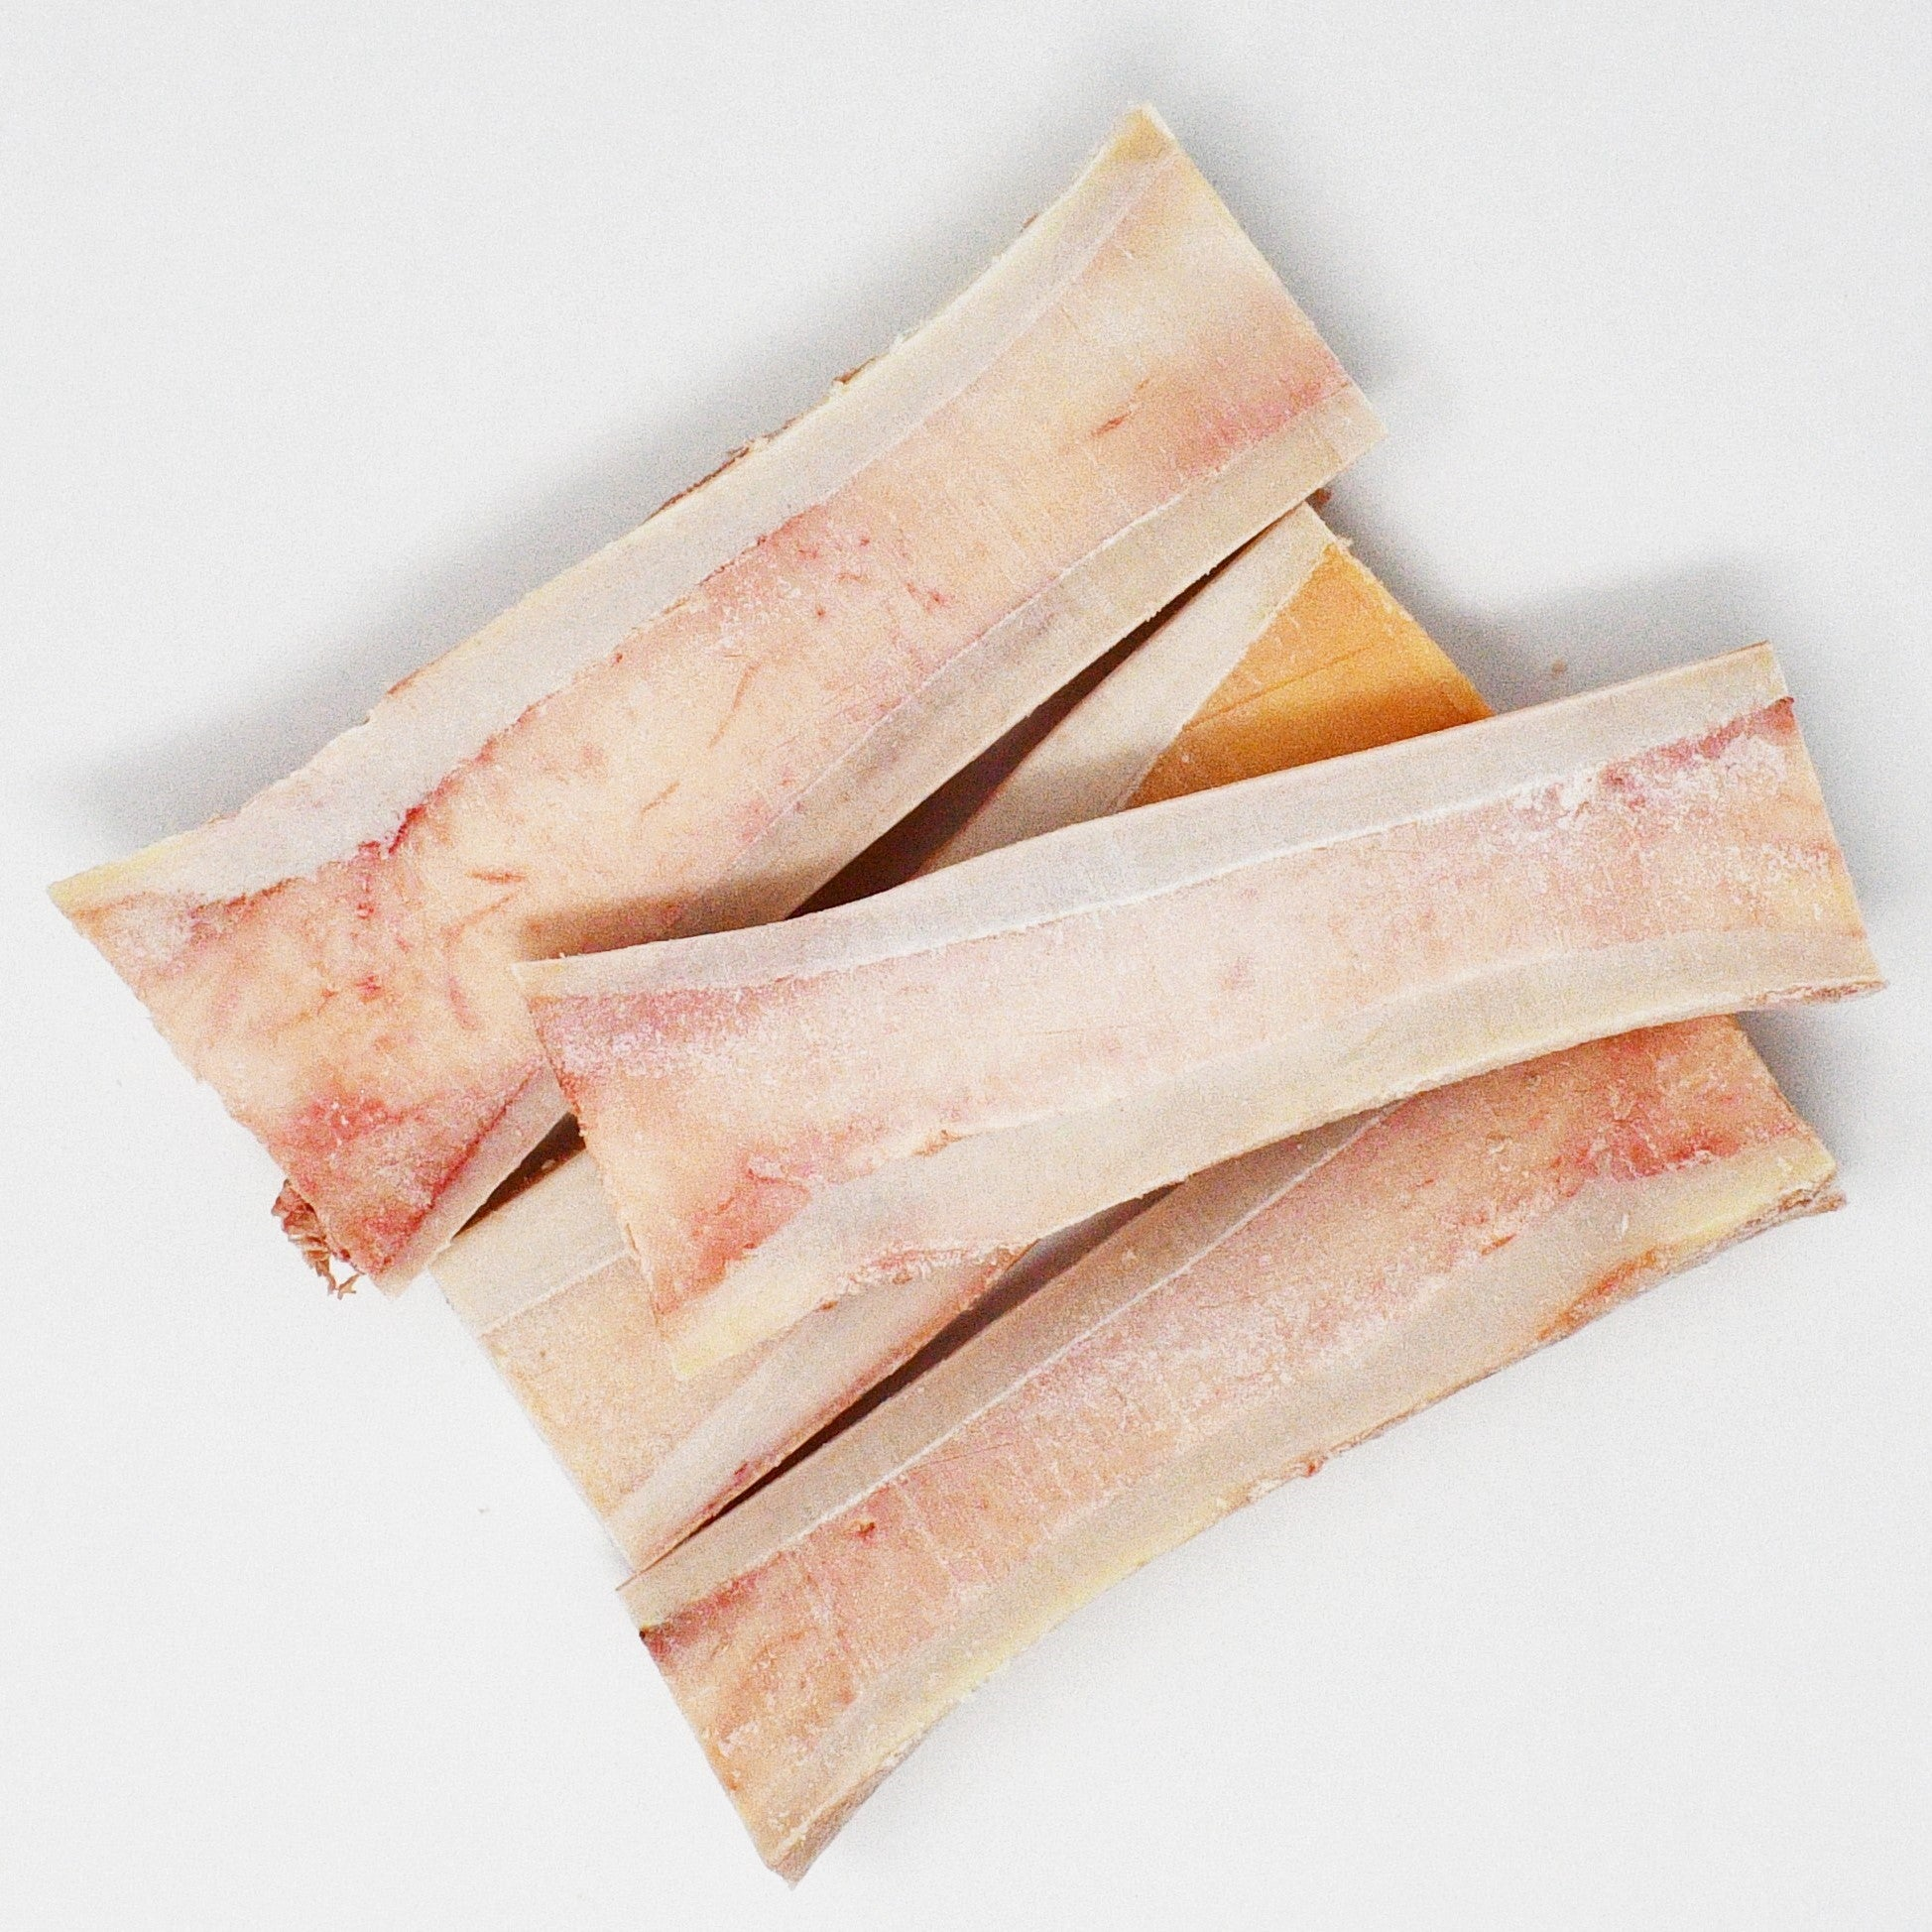 BEEF BONE MARROW (4 PIECES)